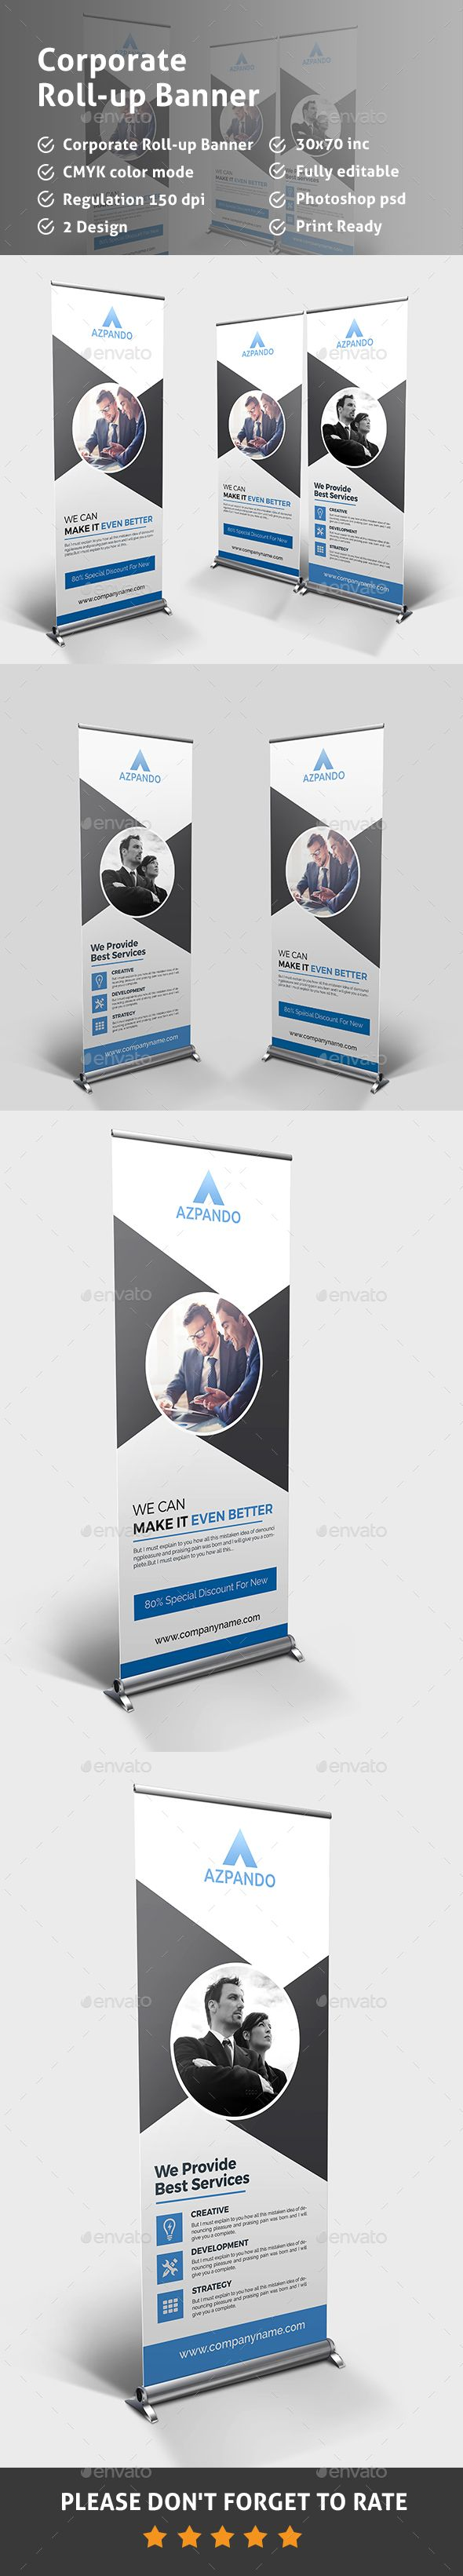 corporate roll up banner rollup banner banner template and banners